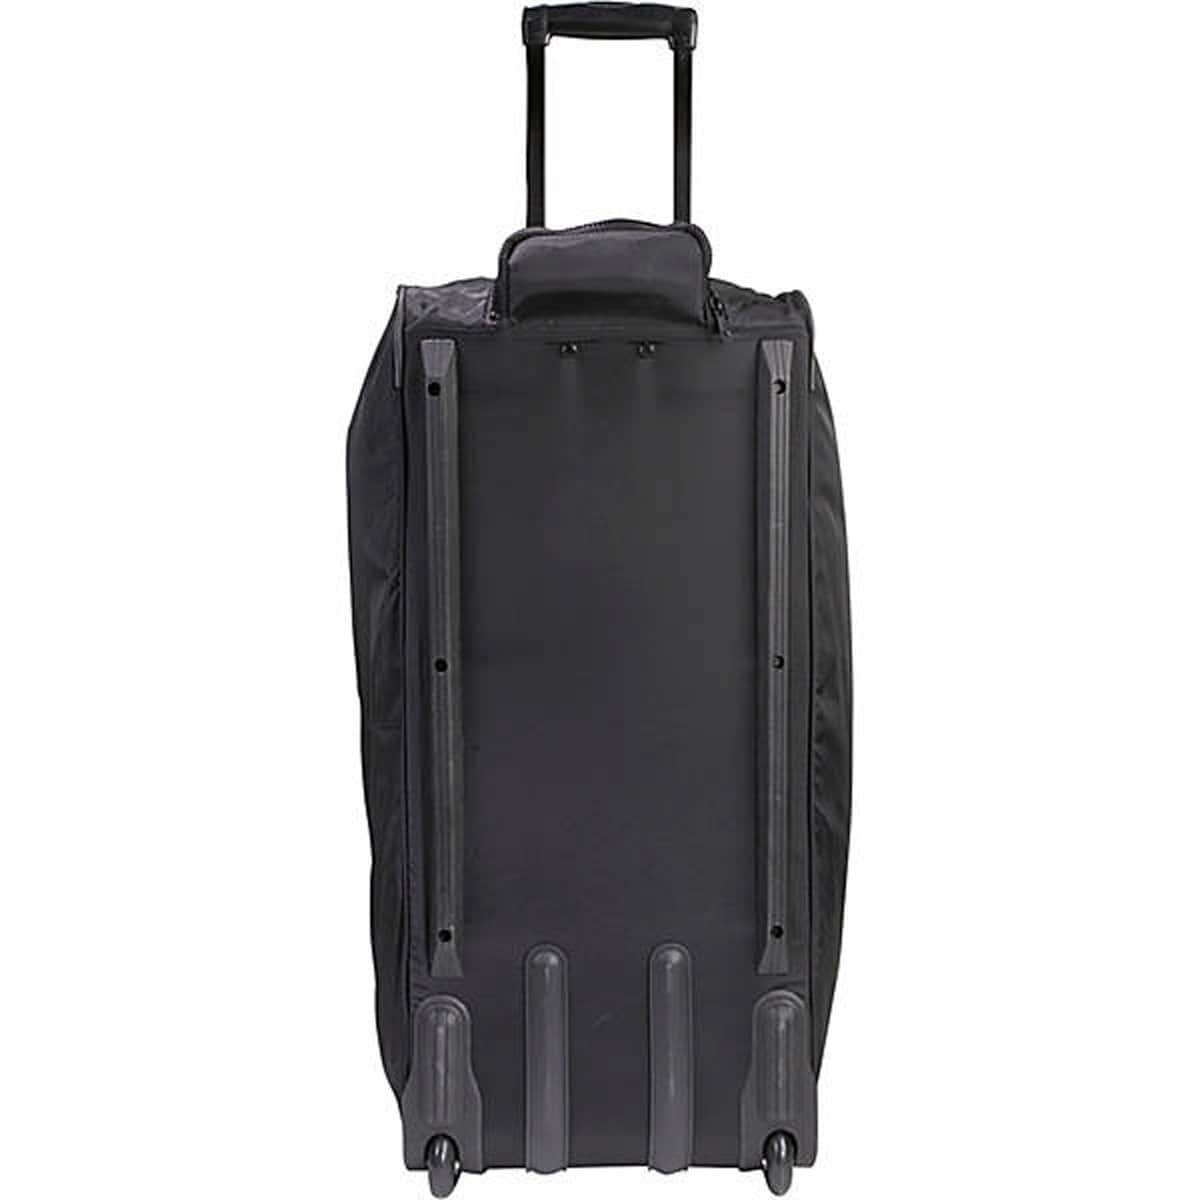 Shop A.Saks 31-inch Expandable Rolling Upright Duffel Bag - Free Shipping  Today - Overstock - 3440027 581e5565187e2